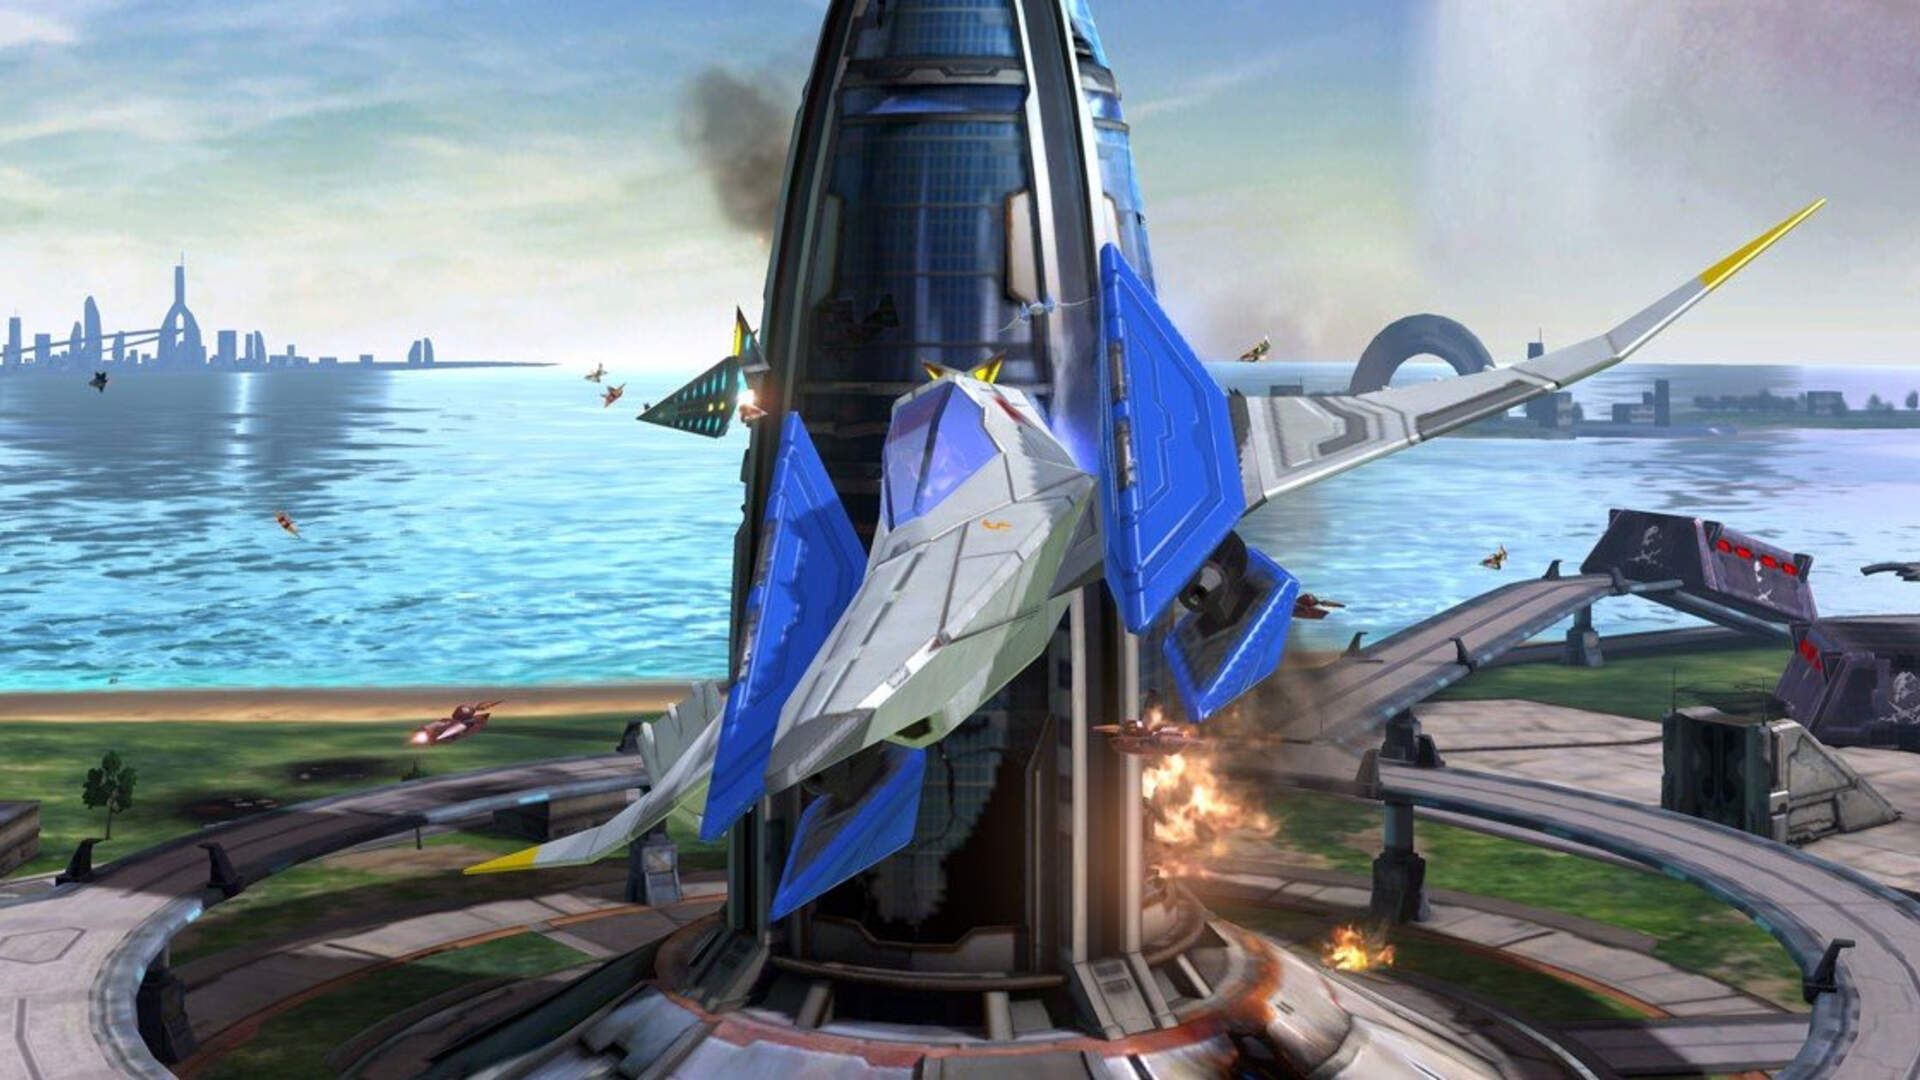 Star Fox Zero Wii U Review: Open the Wings